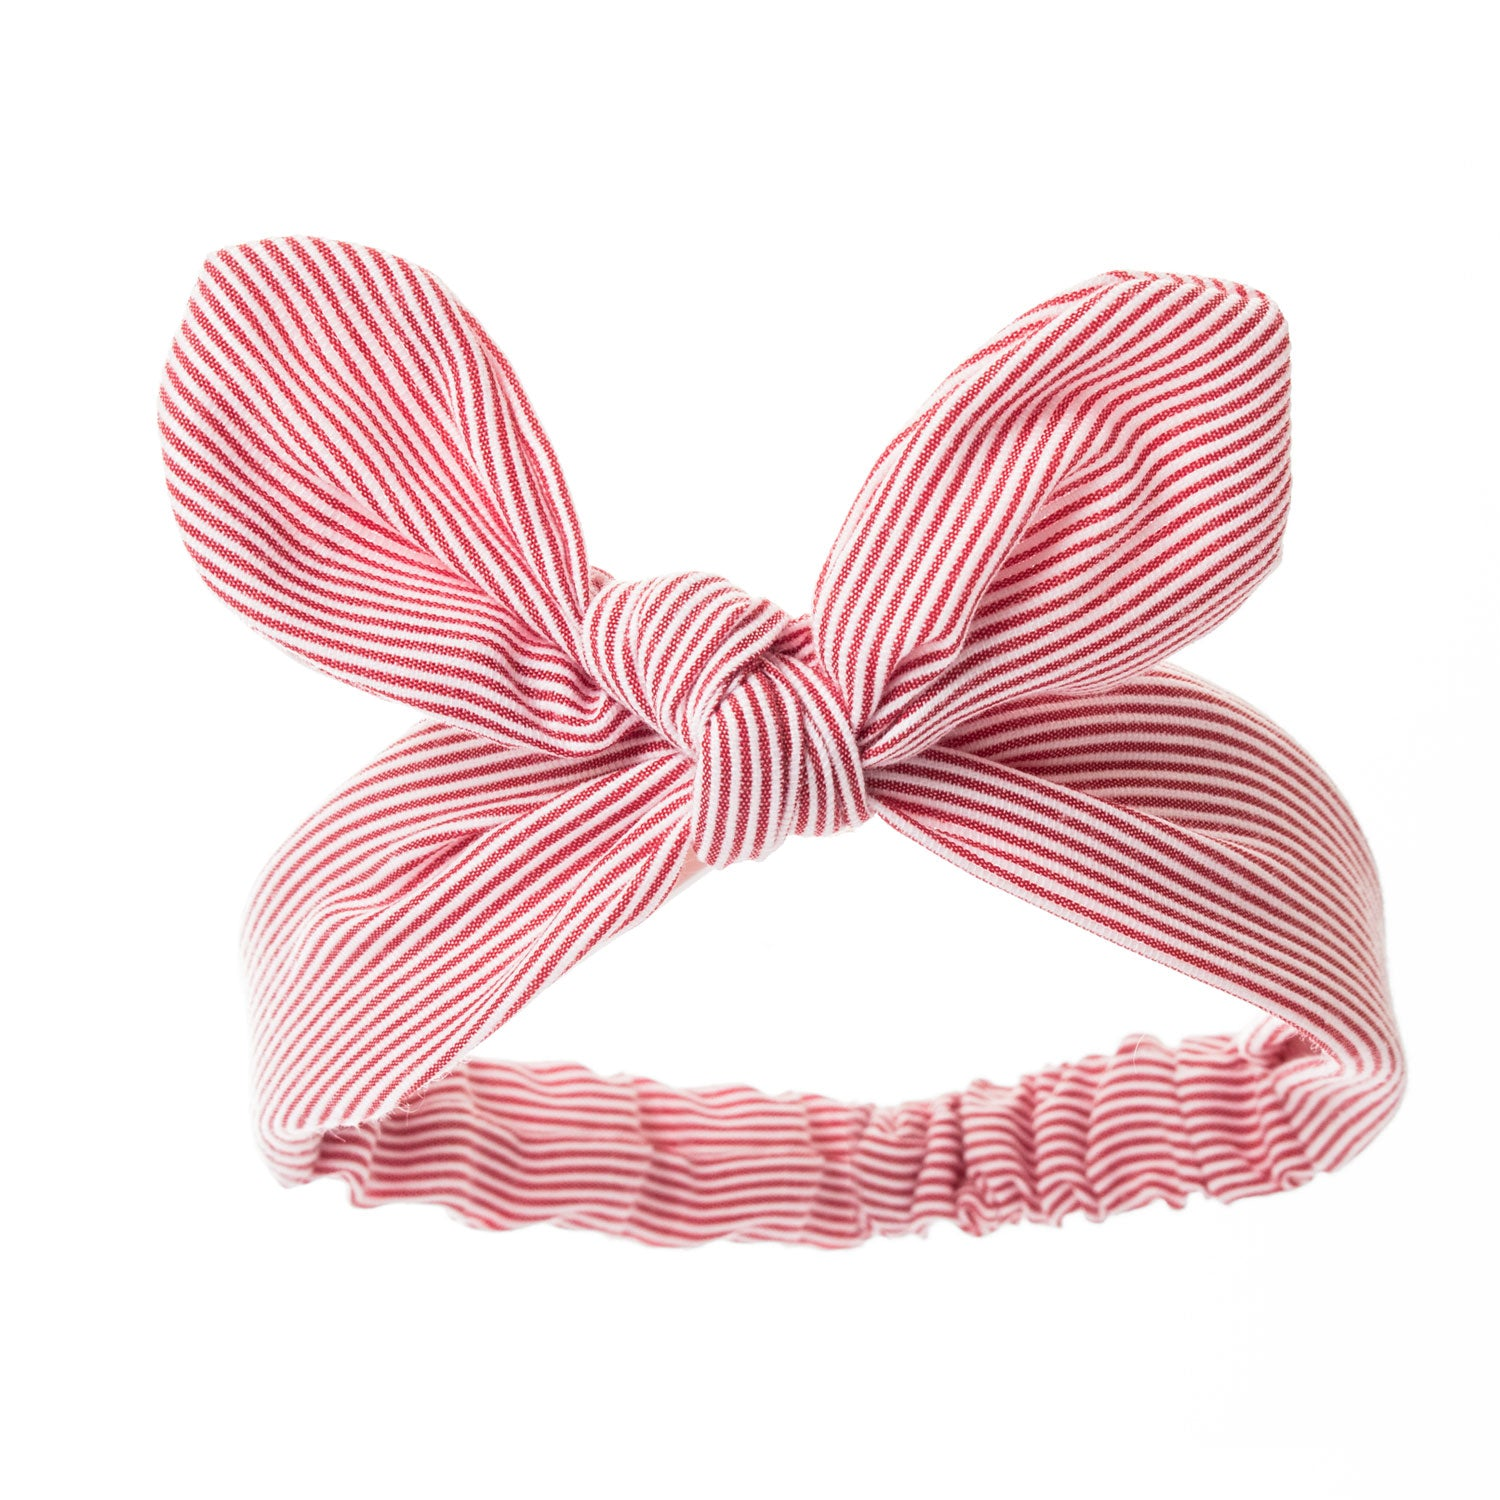 Bonnie Ears headband Red & White Stripes